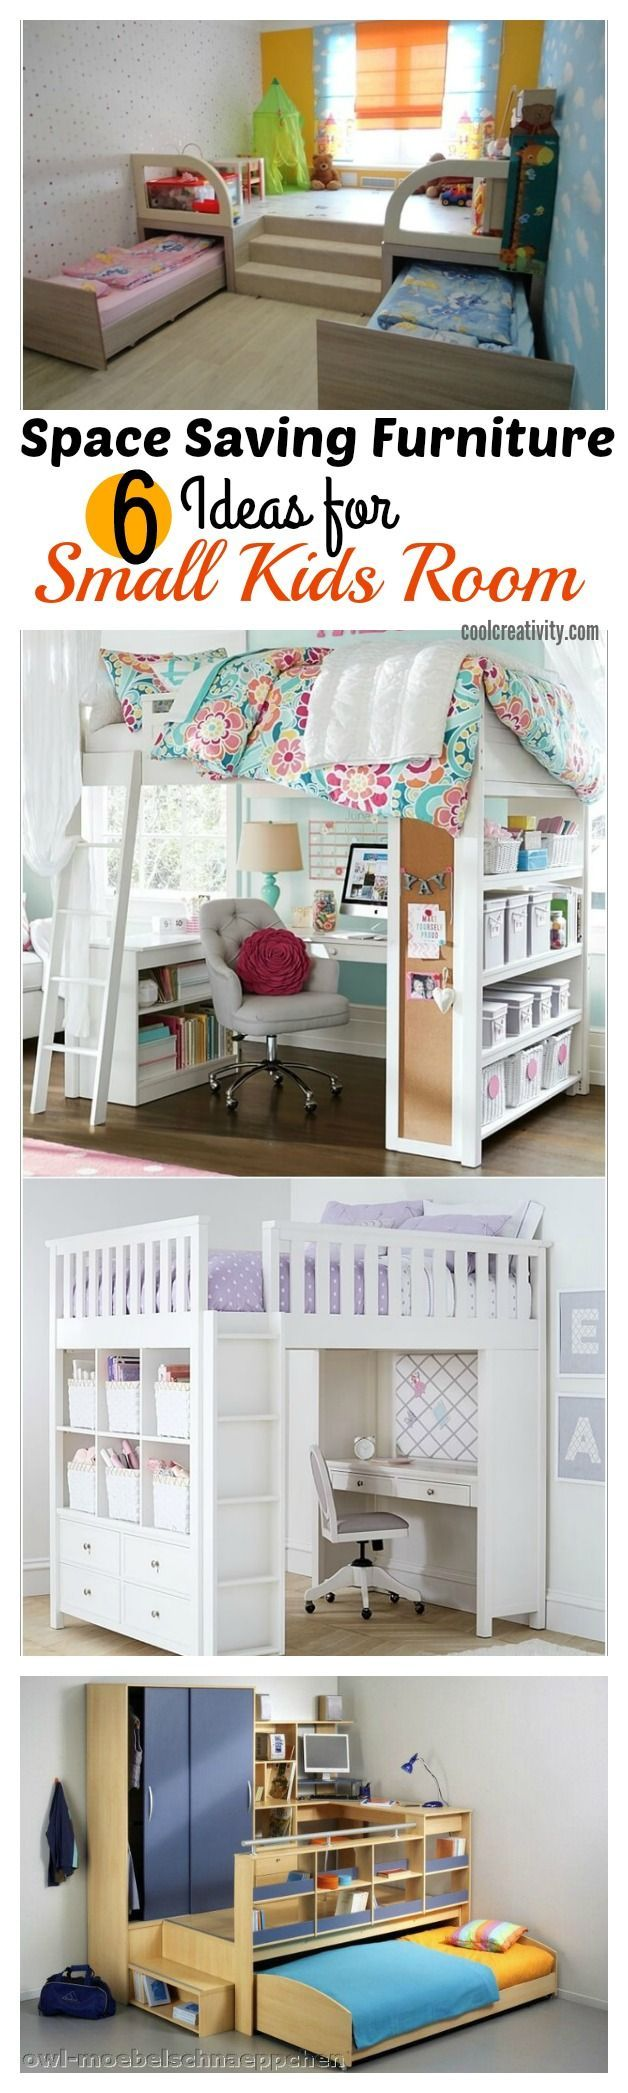 6 Space Saving Furniture Ideas for Small Kids Room | Kids Room Ideas ...